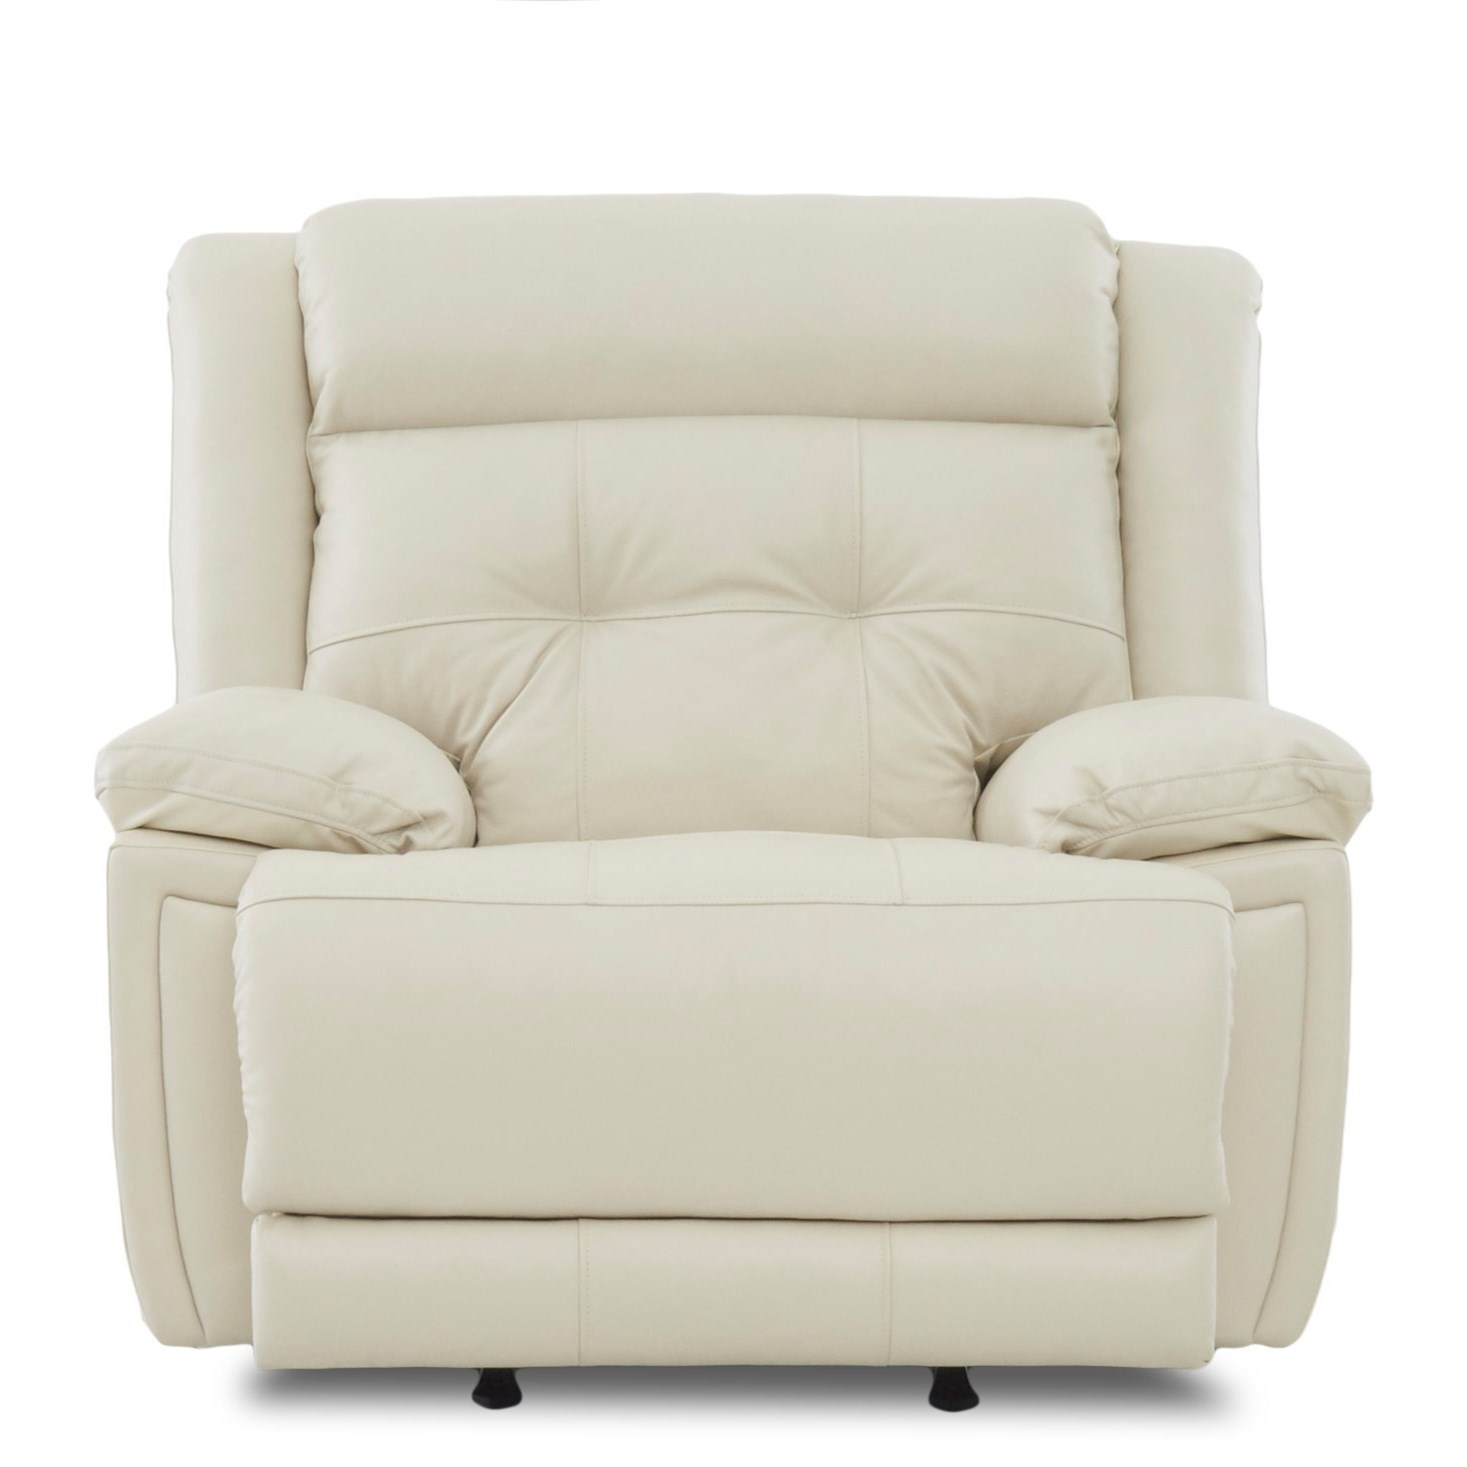 Klaussner McCall Power Rocking Recliner with Power Headrest - Item Number: LV62503-6 PWRRC- Durango Oatmeal